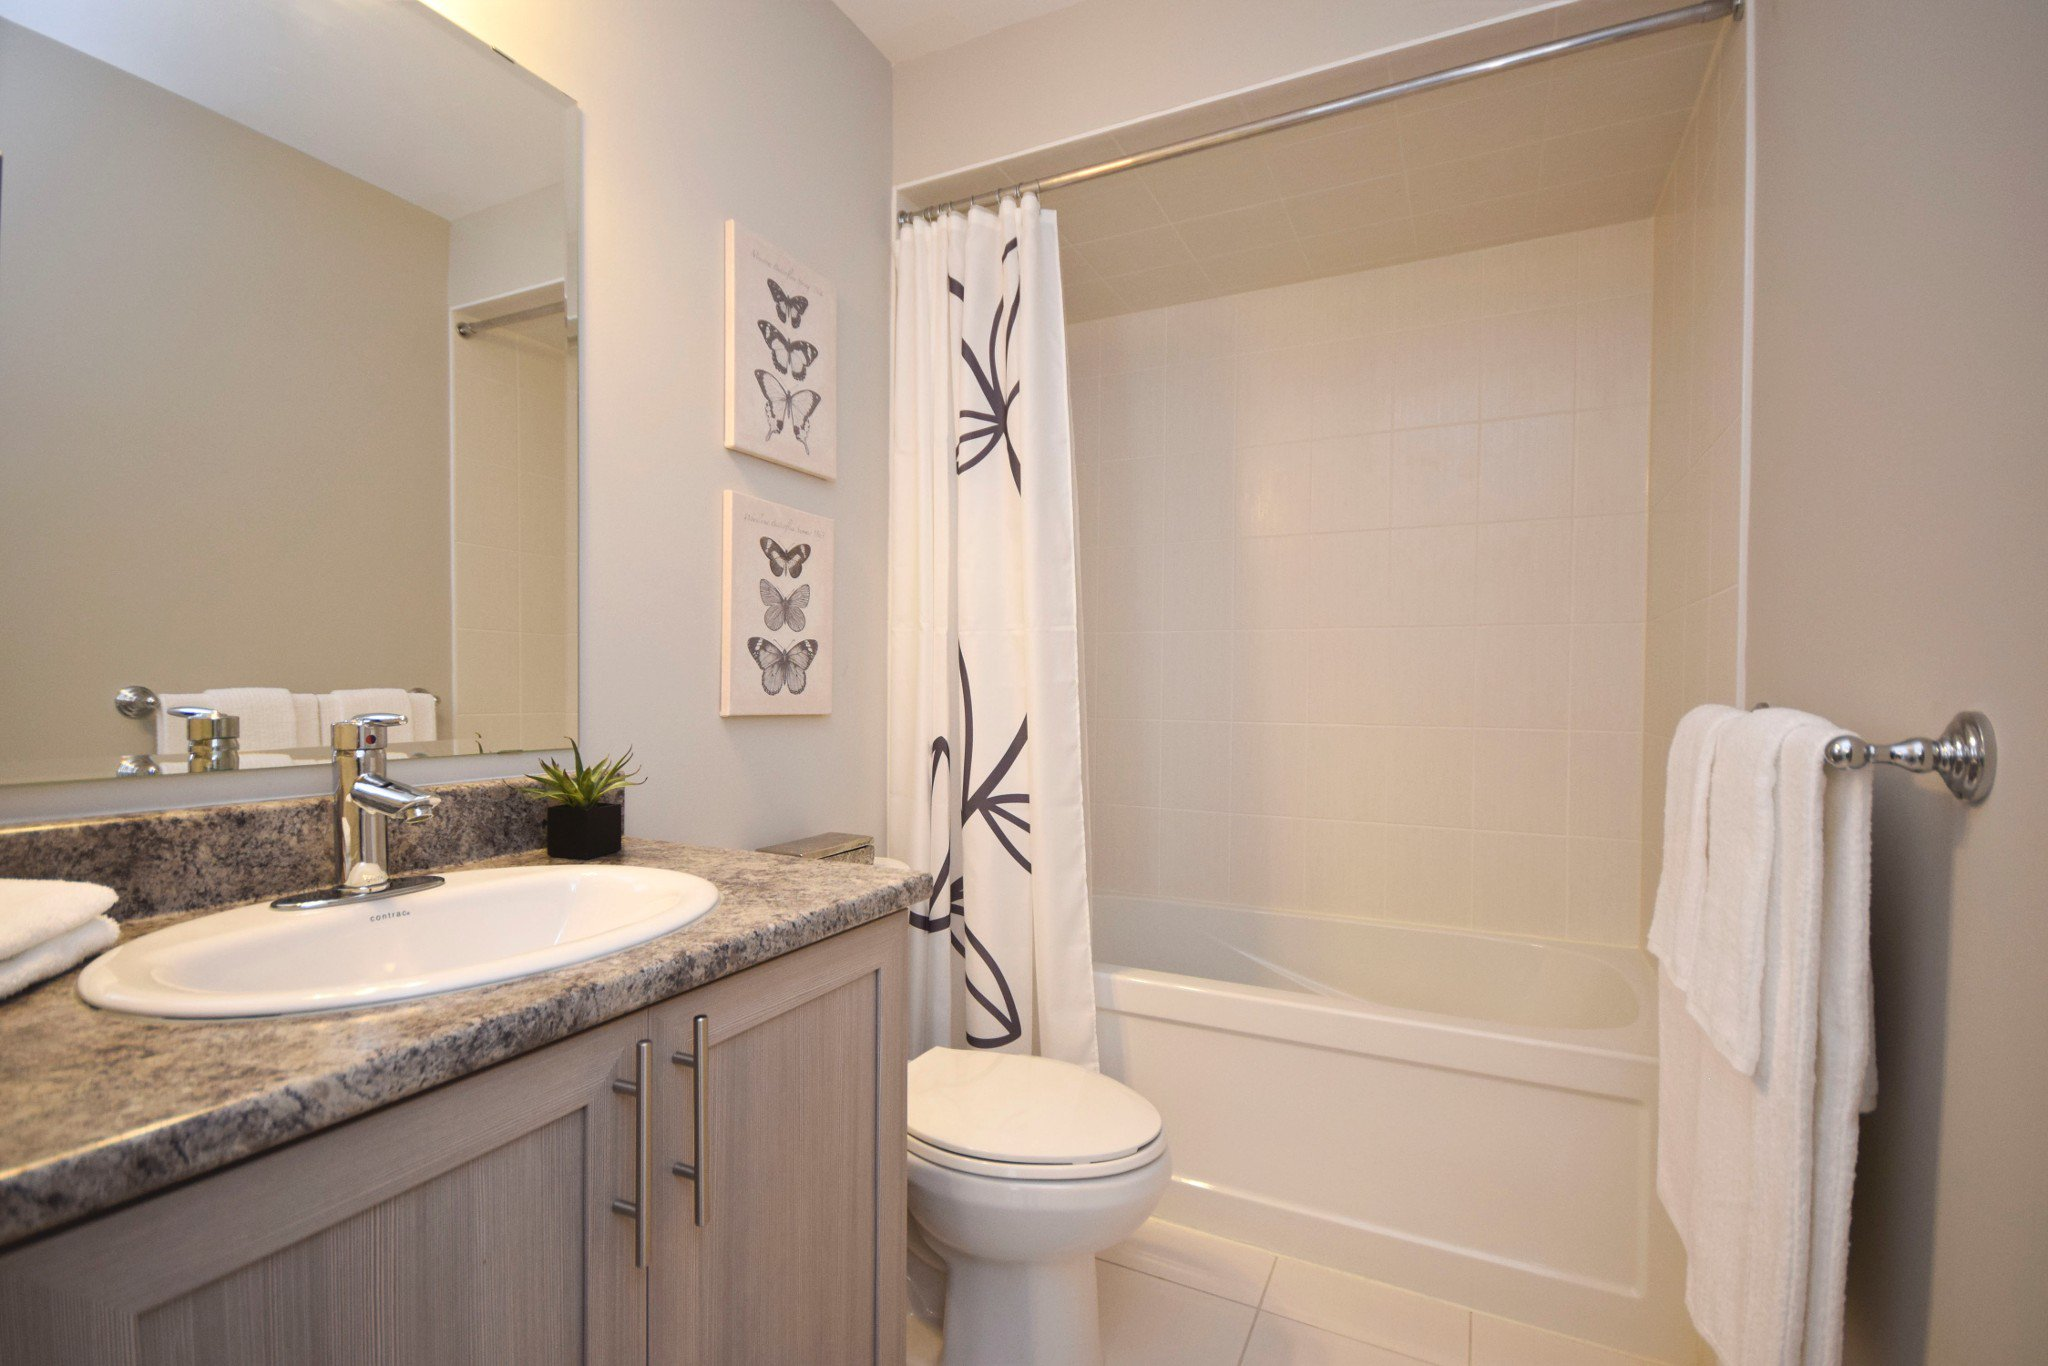 Photo 52: Photos: 131 Popplewell Crescent in Ottawa: Cedargrove / Fraserdale House for sale (Barrhaven)  : MLS®# 1130335